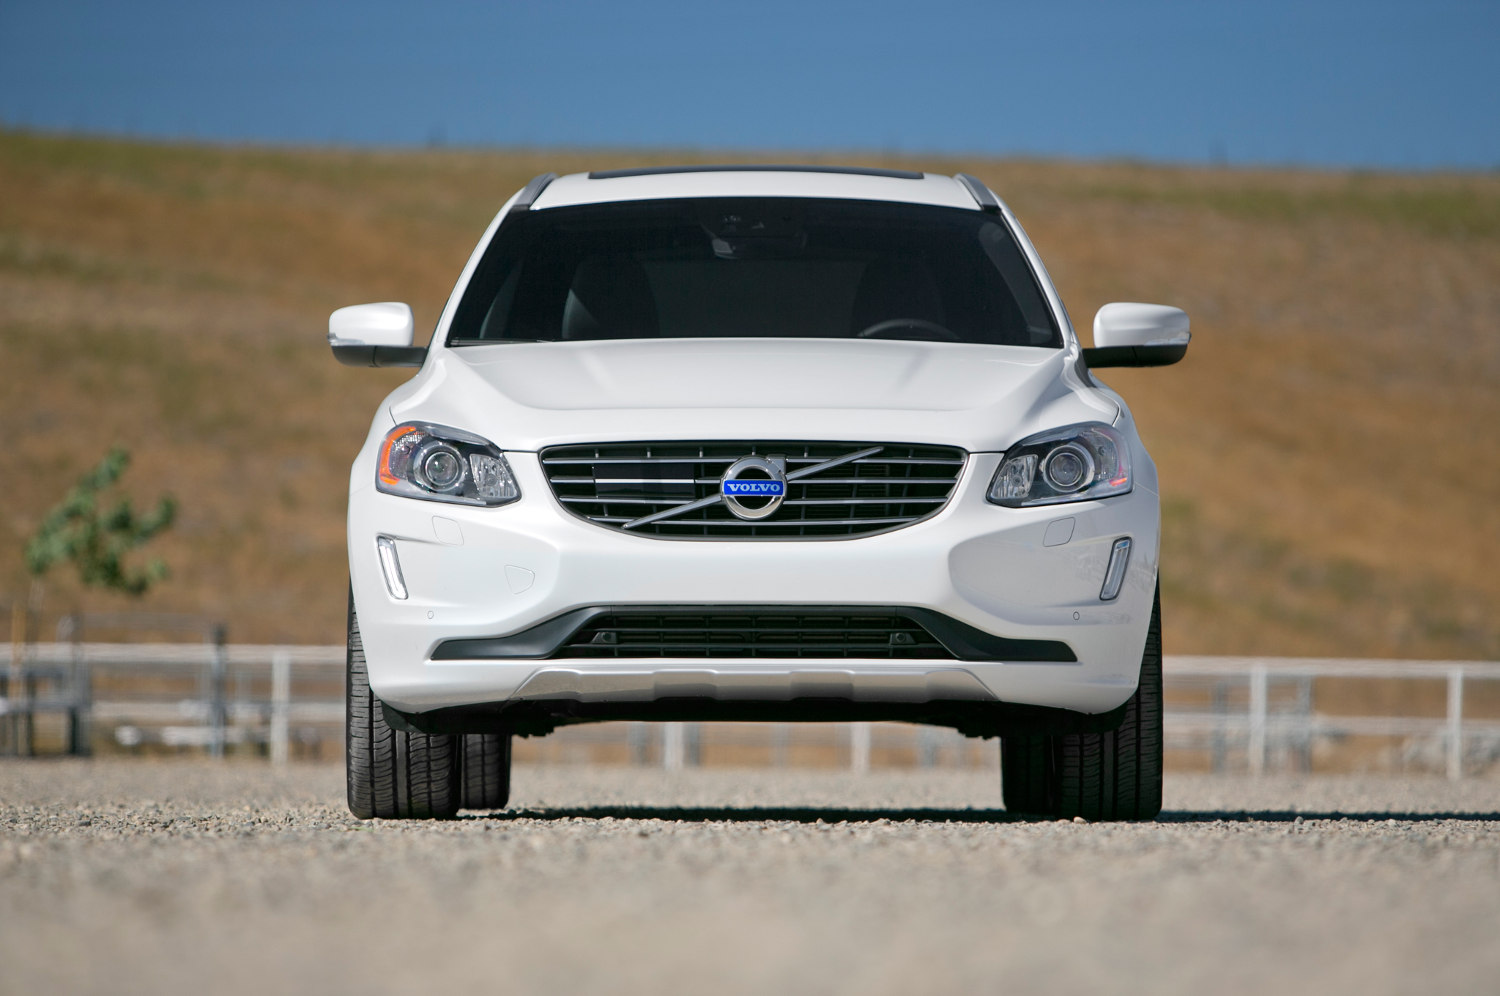 wilkes sale automatic volvo for barre turbocharged silver suv certified engine door awd metallic pa bright